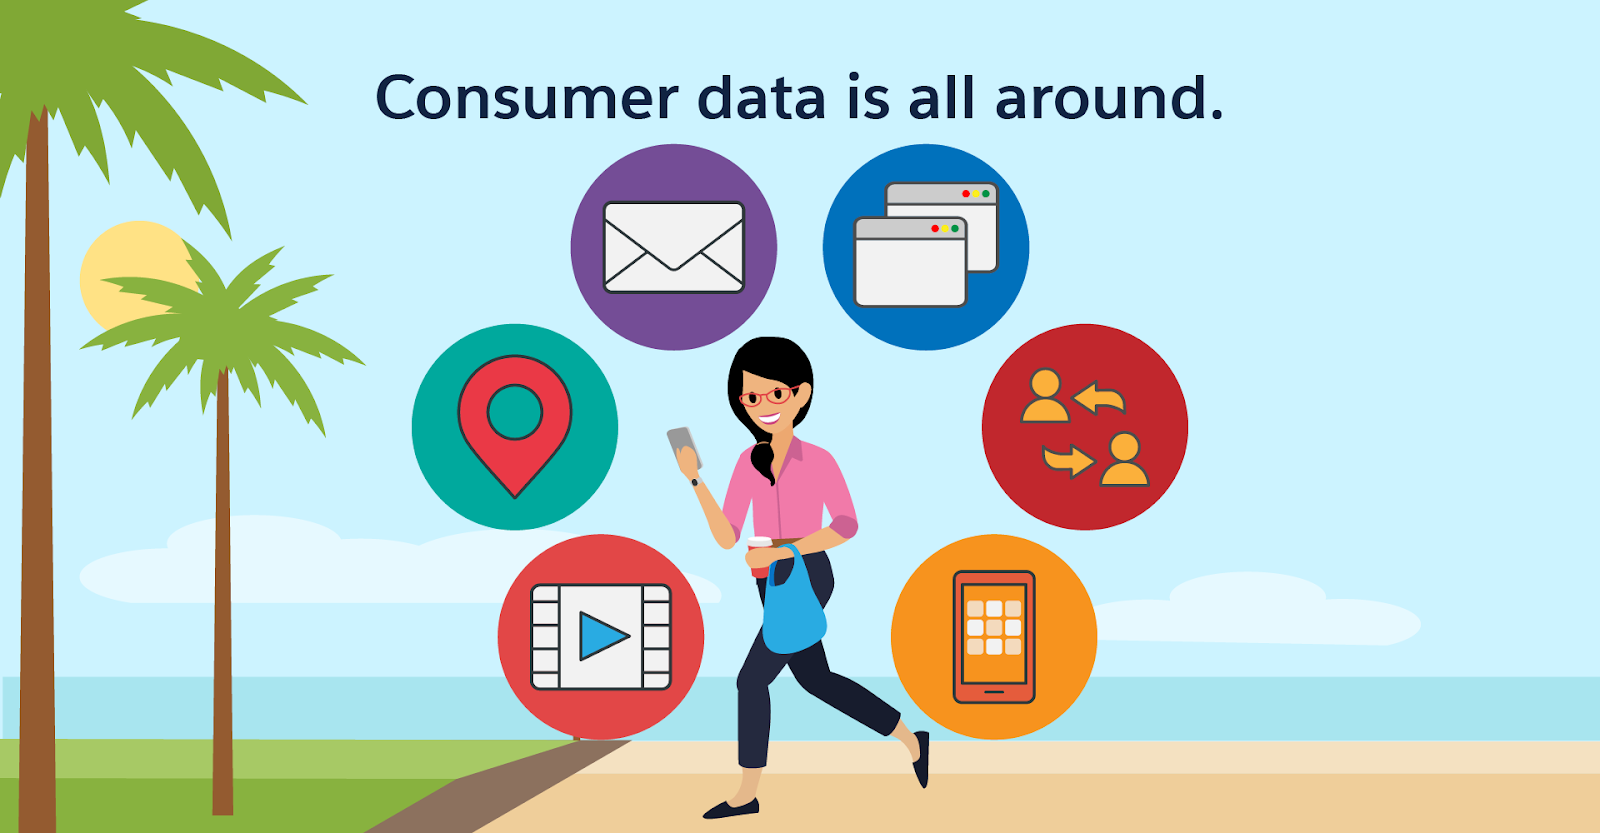 Consumer data is all around. Sarah the mathematician walks down a beach, holding her phone and carrying a coffee cup and a shopping bag. Symbols for all of the touchpoints she uses float around her: browsers, social media, apps, TV, GPS, and email.